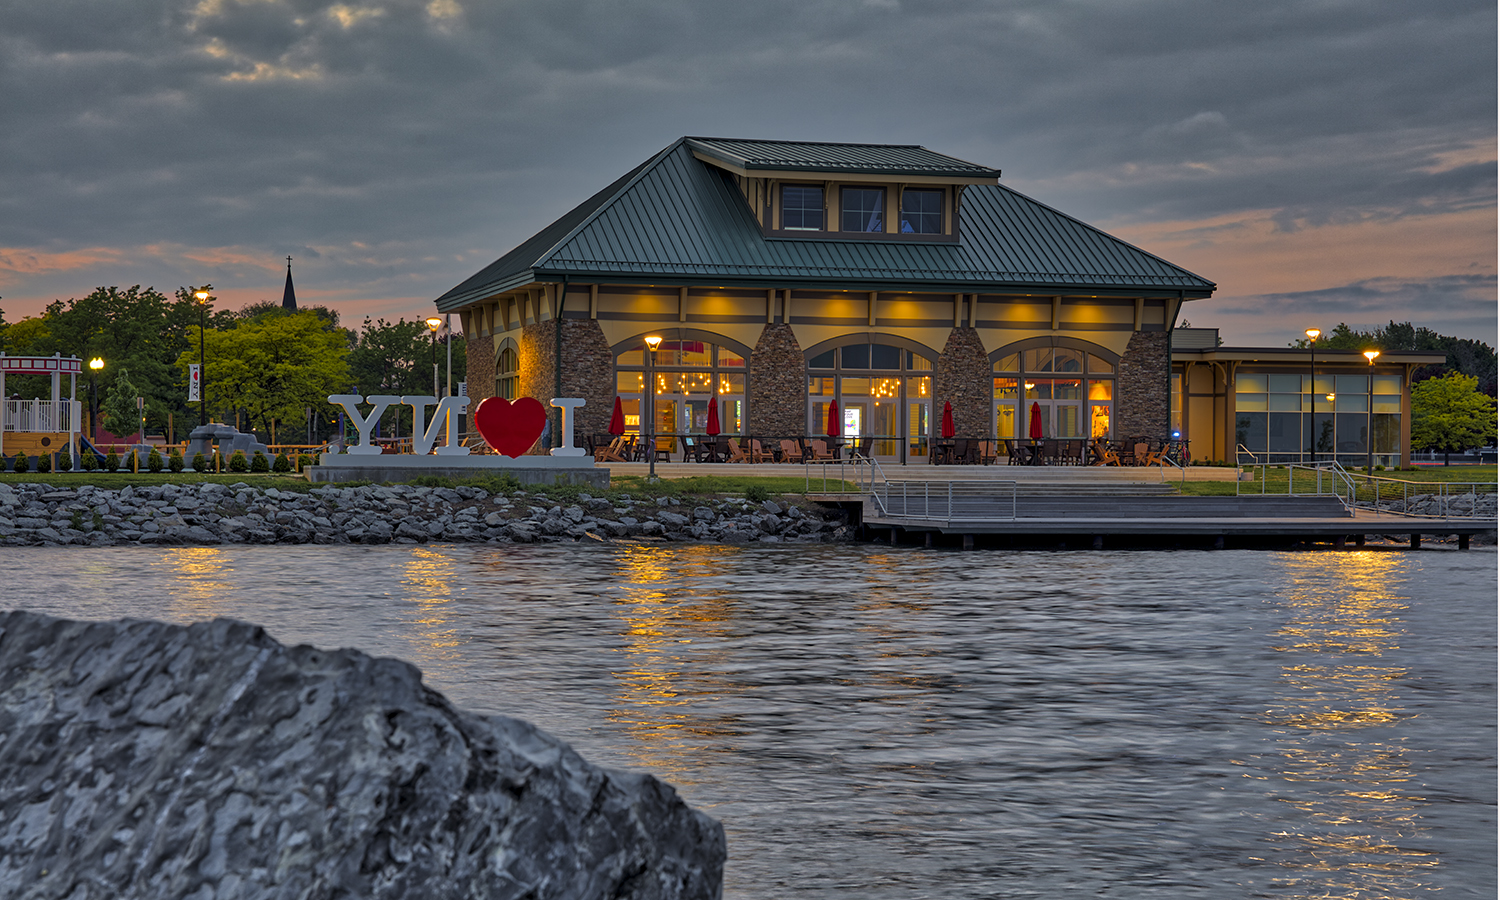 Dusk at the New York State Fingerlakes Welcome Center in Geneva., N.Y. In 2016, The City of Geneva received a $10 million investment through the Finger Lakes Regional Economic Development Council as part of a $100 million Downtown Revitalization Initiative launched by New York Governor Andrew M. Cuomo.